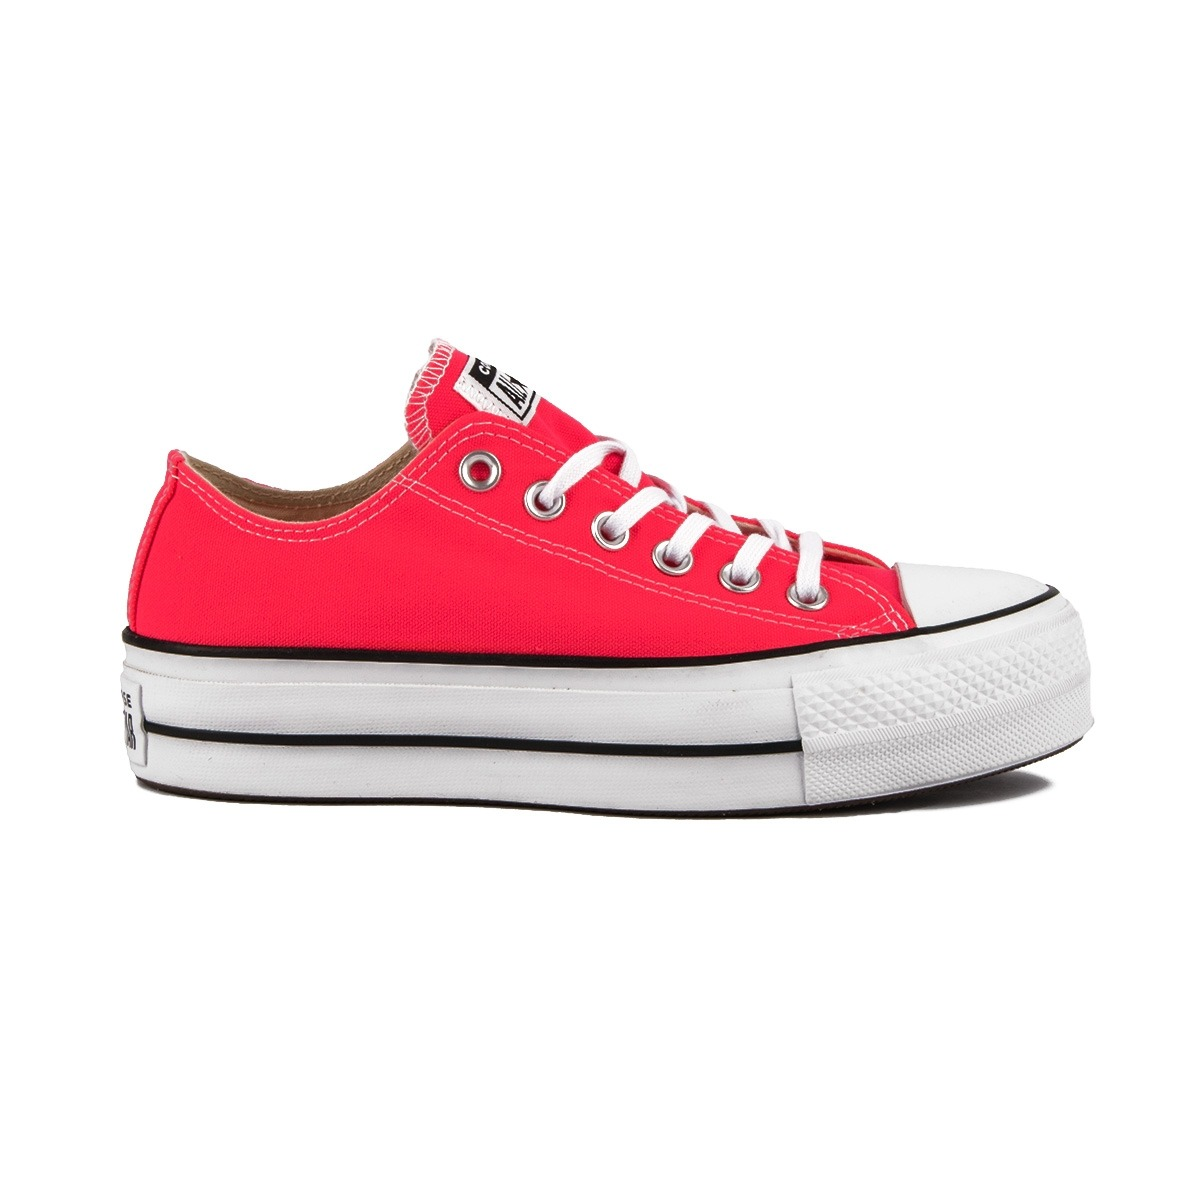 Converse Chuck Taylor All Star Clean Lift Low Top Plataforma Racer Pink Rosa Fluor Mujer